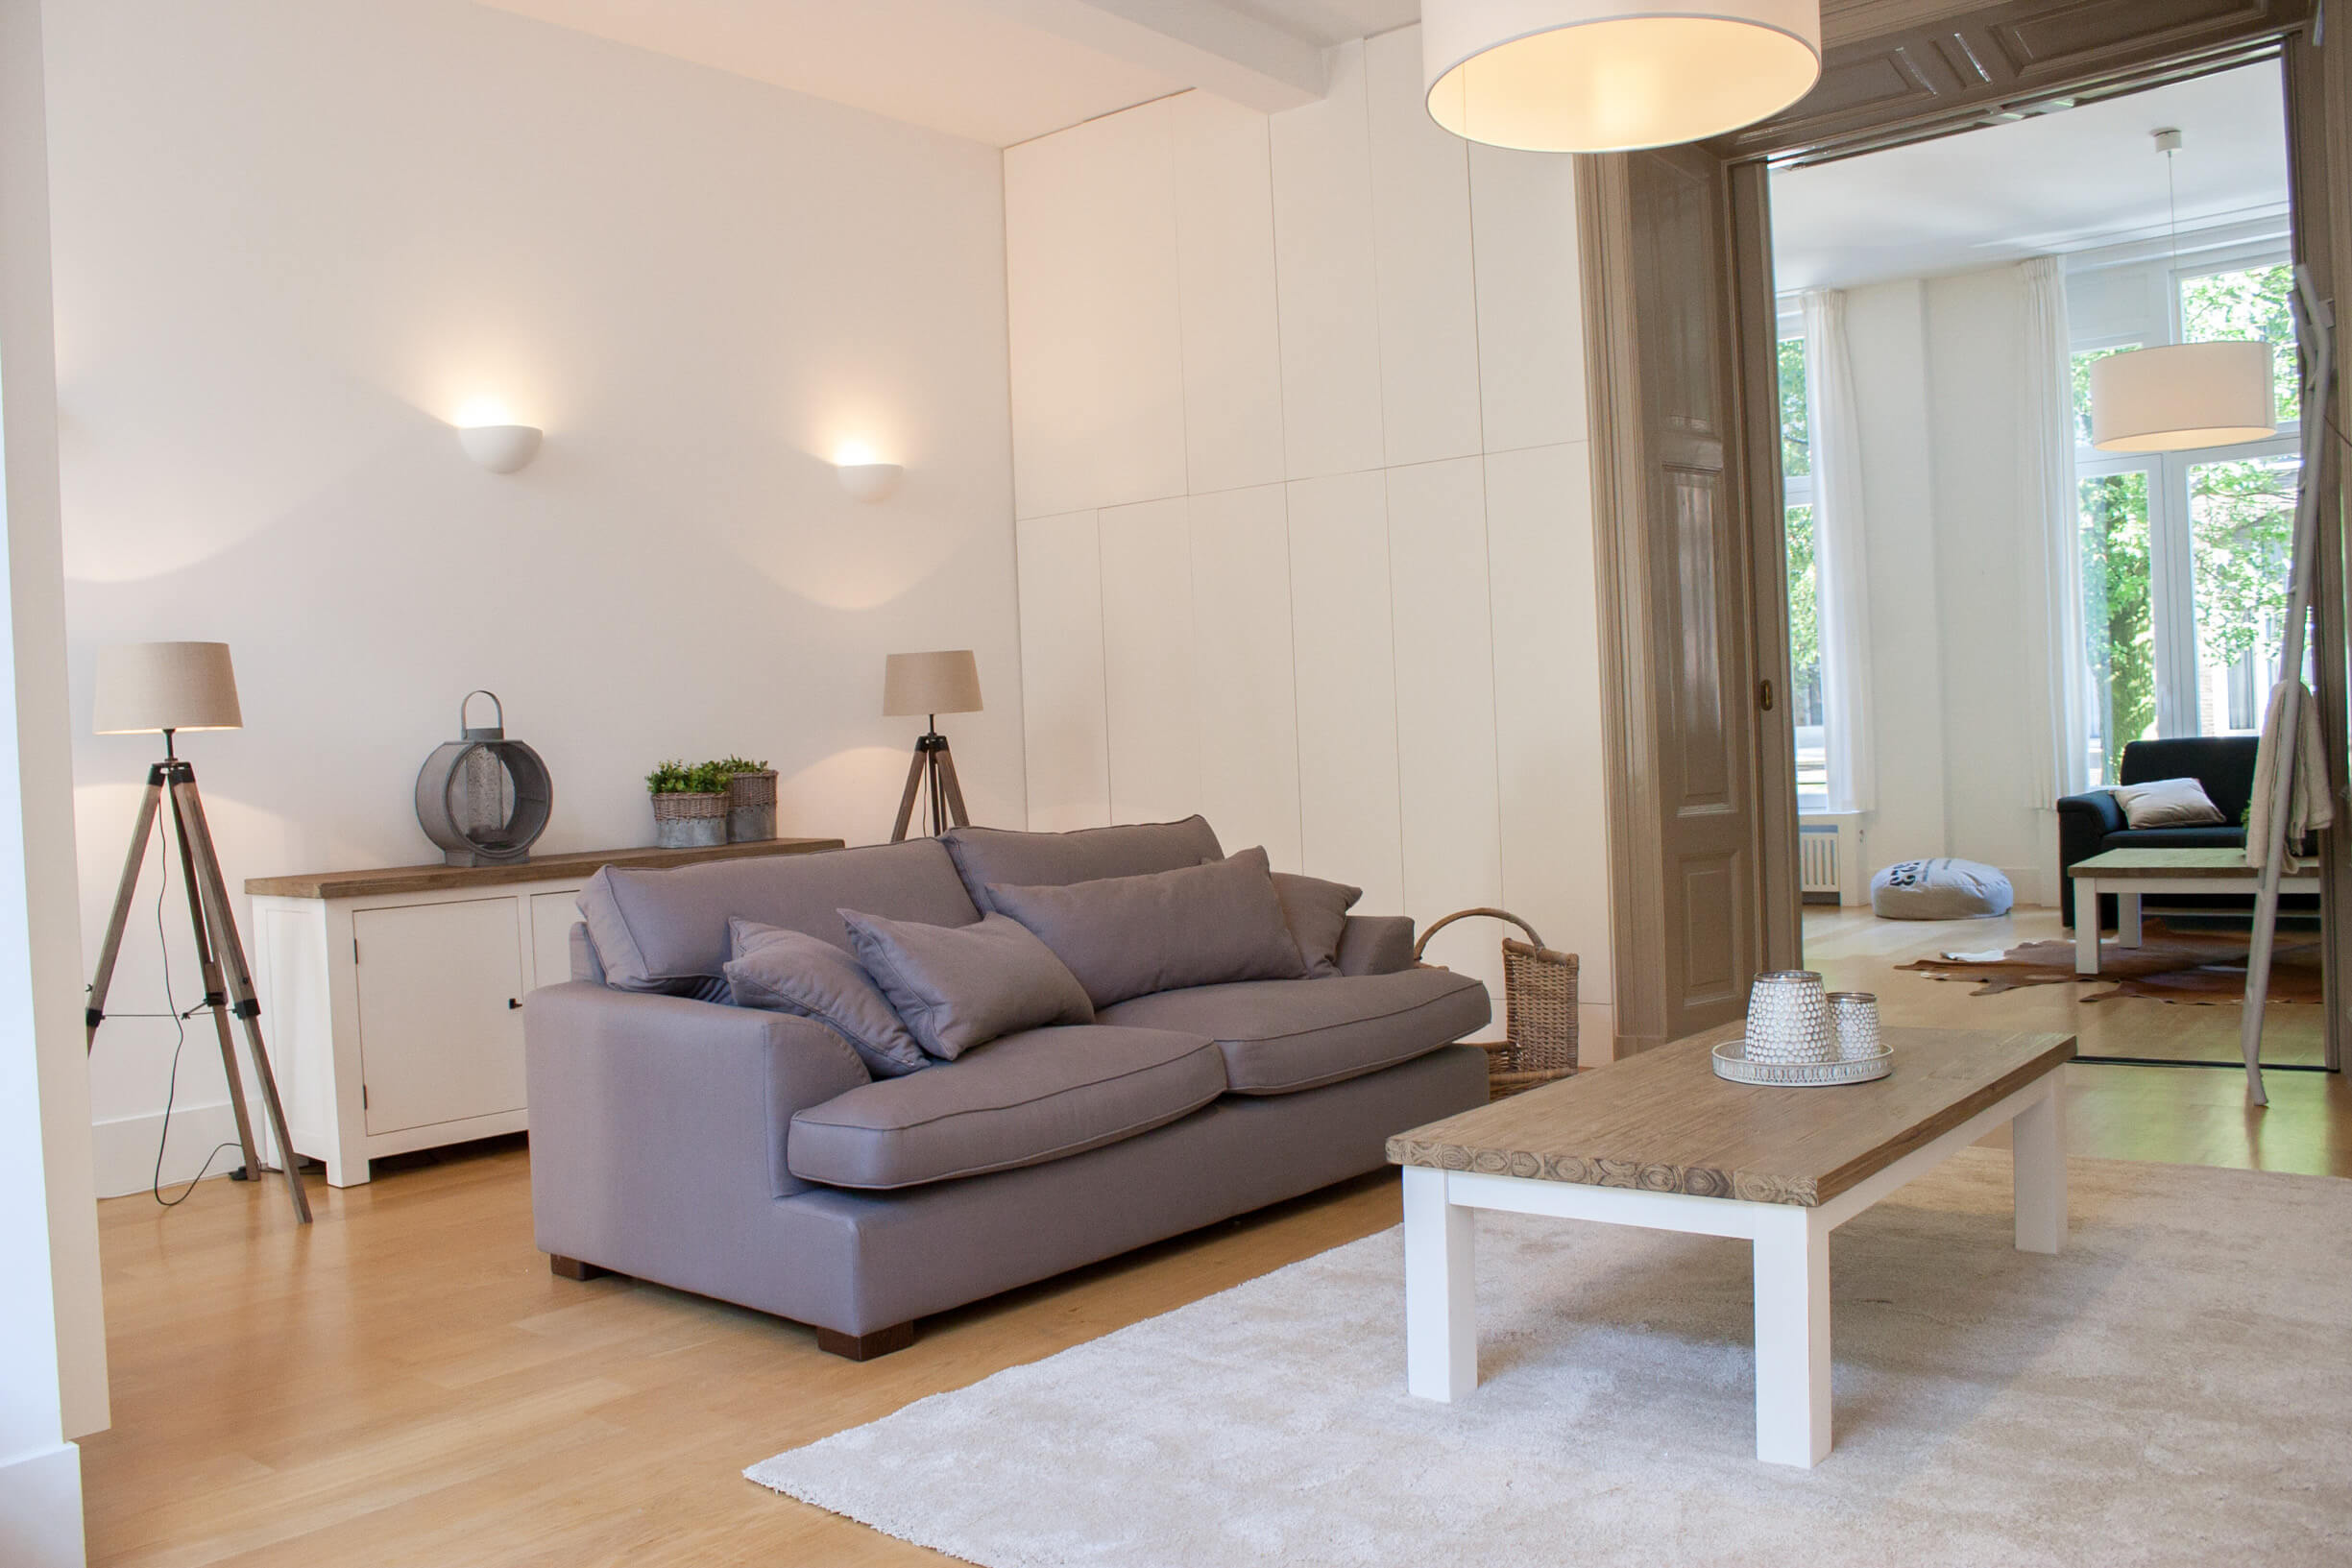 Furniture Rental   For a.o. Expatriates | Real estate agents | Sports organizations | Home Staging | Events   request a quote